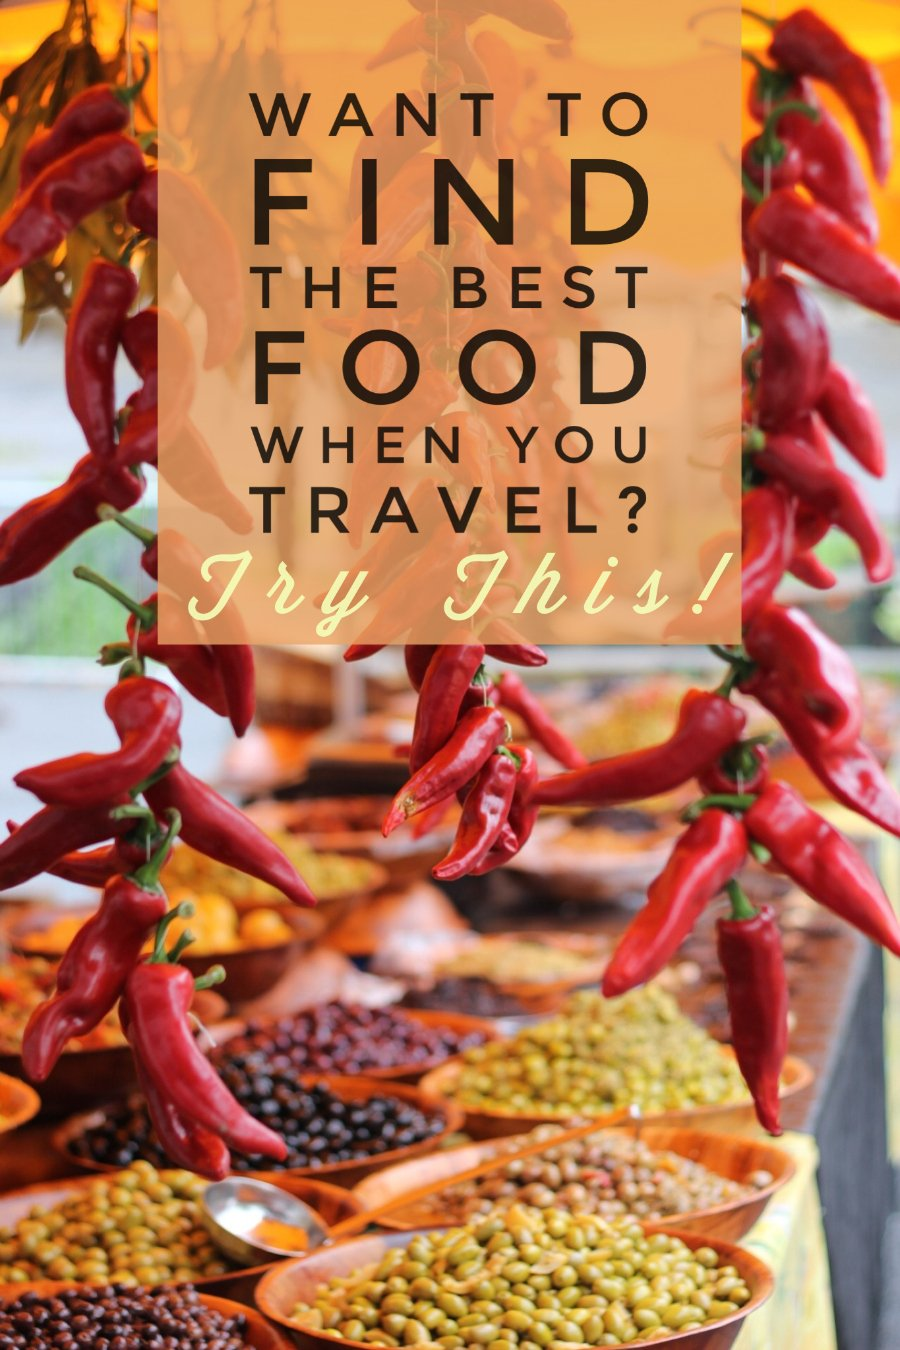 We asked 25 travel bloggers to inspire you with a tantalizing taste of the best food tours they've ever experienced. Here's what they told us. #world #global #foodtours #australia #china #czechrepublic #hungary #italy #japan #korea #malta #netherlands #panama #portugal #spain #sweden #thailand #usa #vietnam